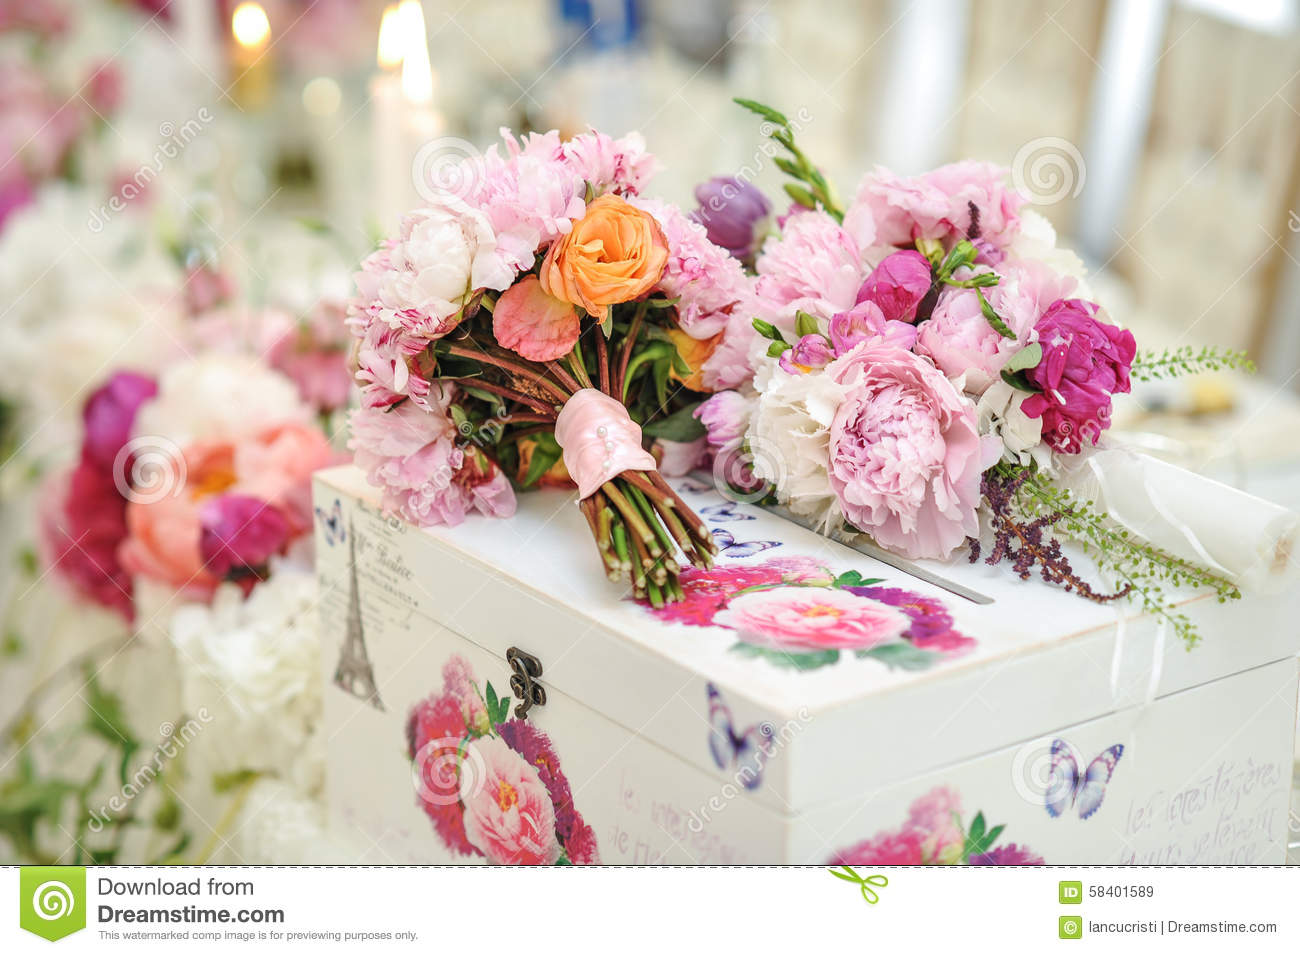 Wedding decoration on table floral arrangements and for Wedding decoration images